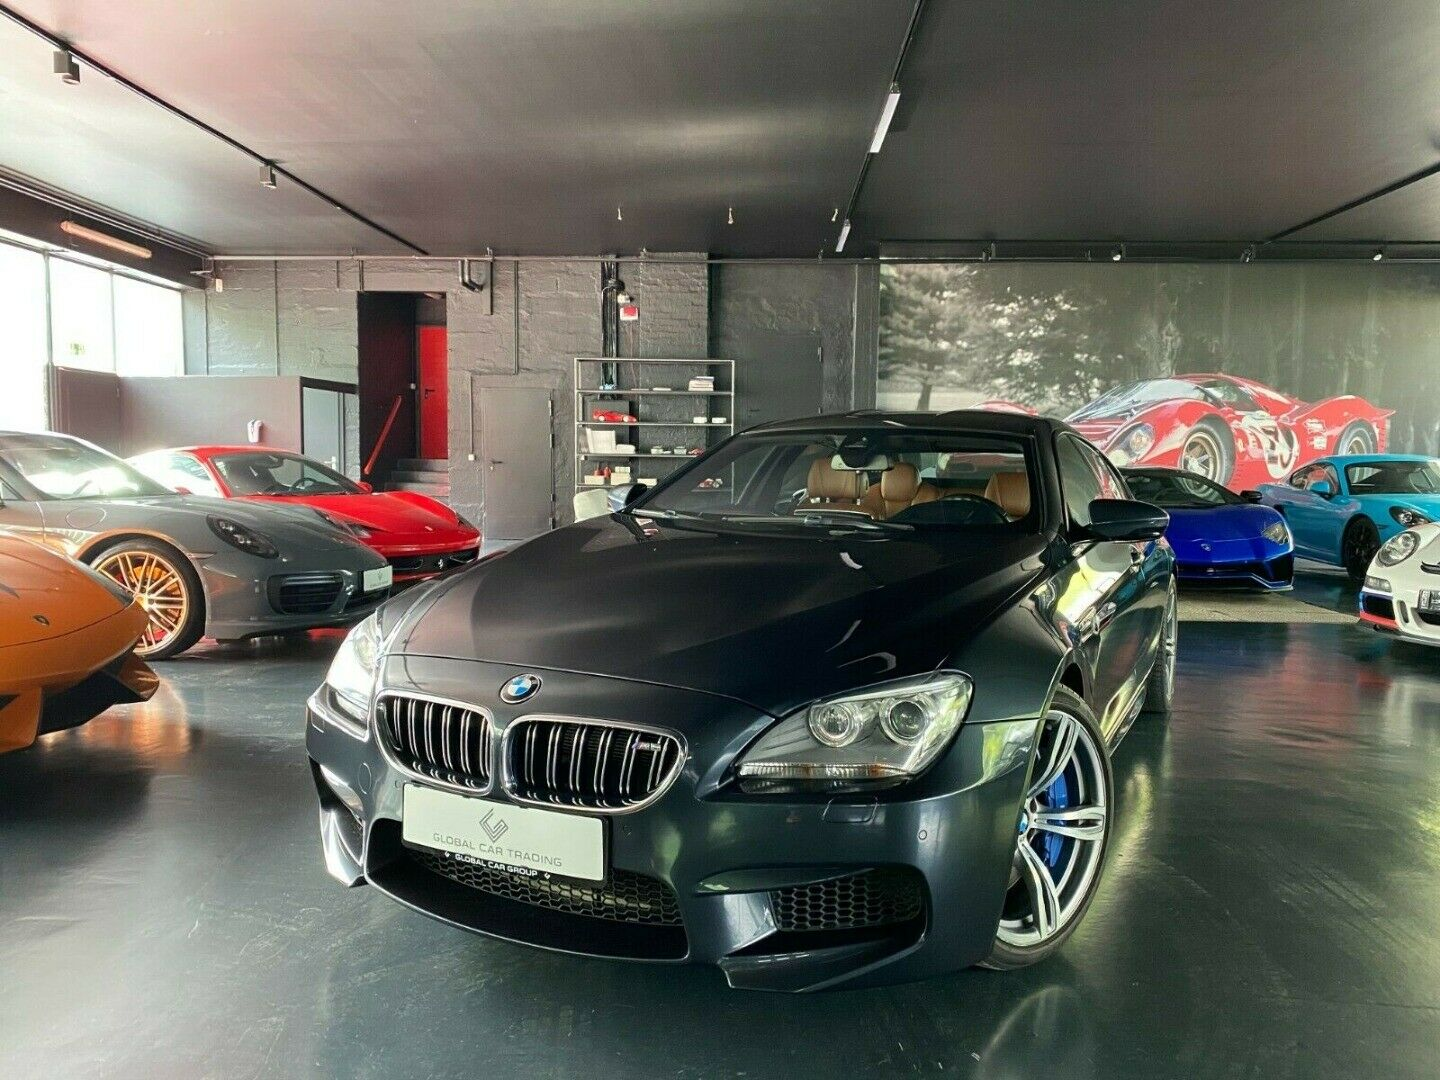 Picture of: Bmw M6 Biler